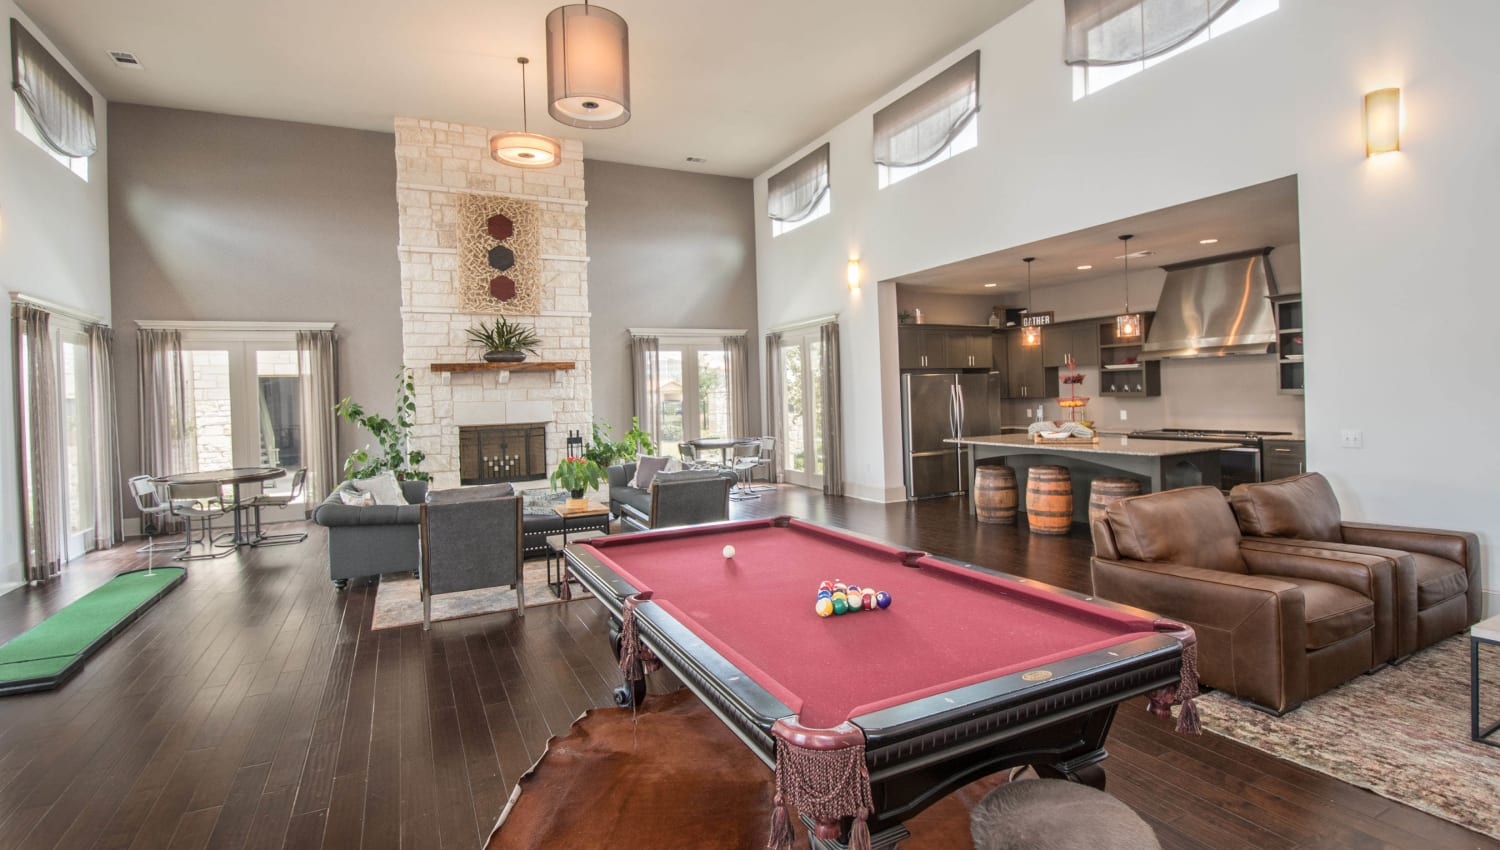 Billiards table and more in the game room at Carrington Oaks in Buda, Texas